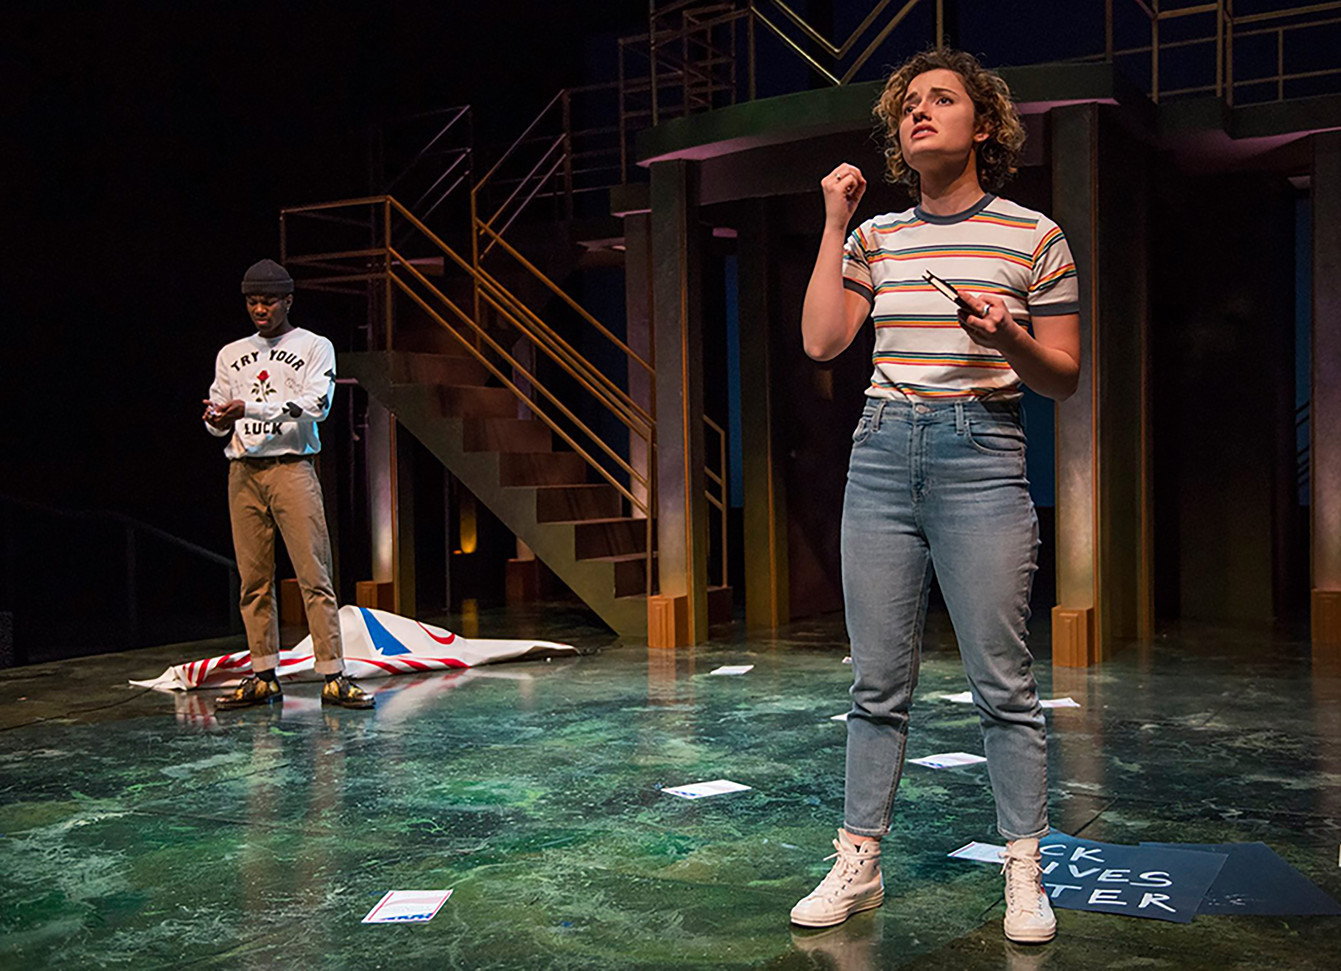 ROMEO AND JULIET - Fullerton Stage at DePaul University, Chicago